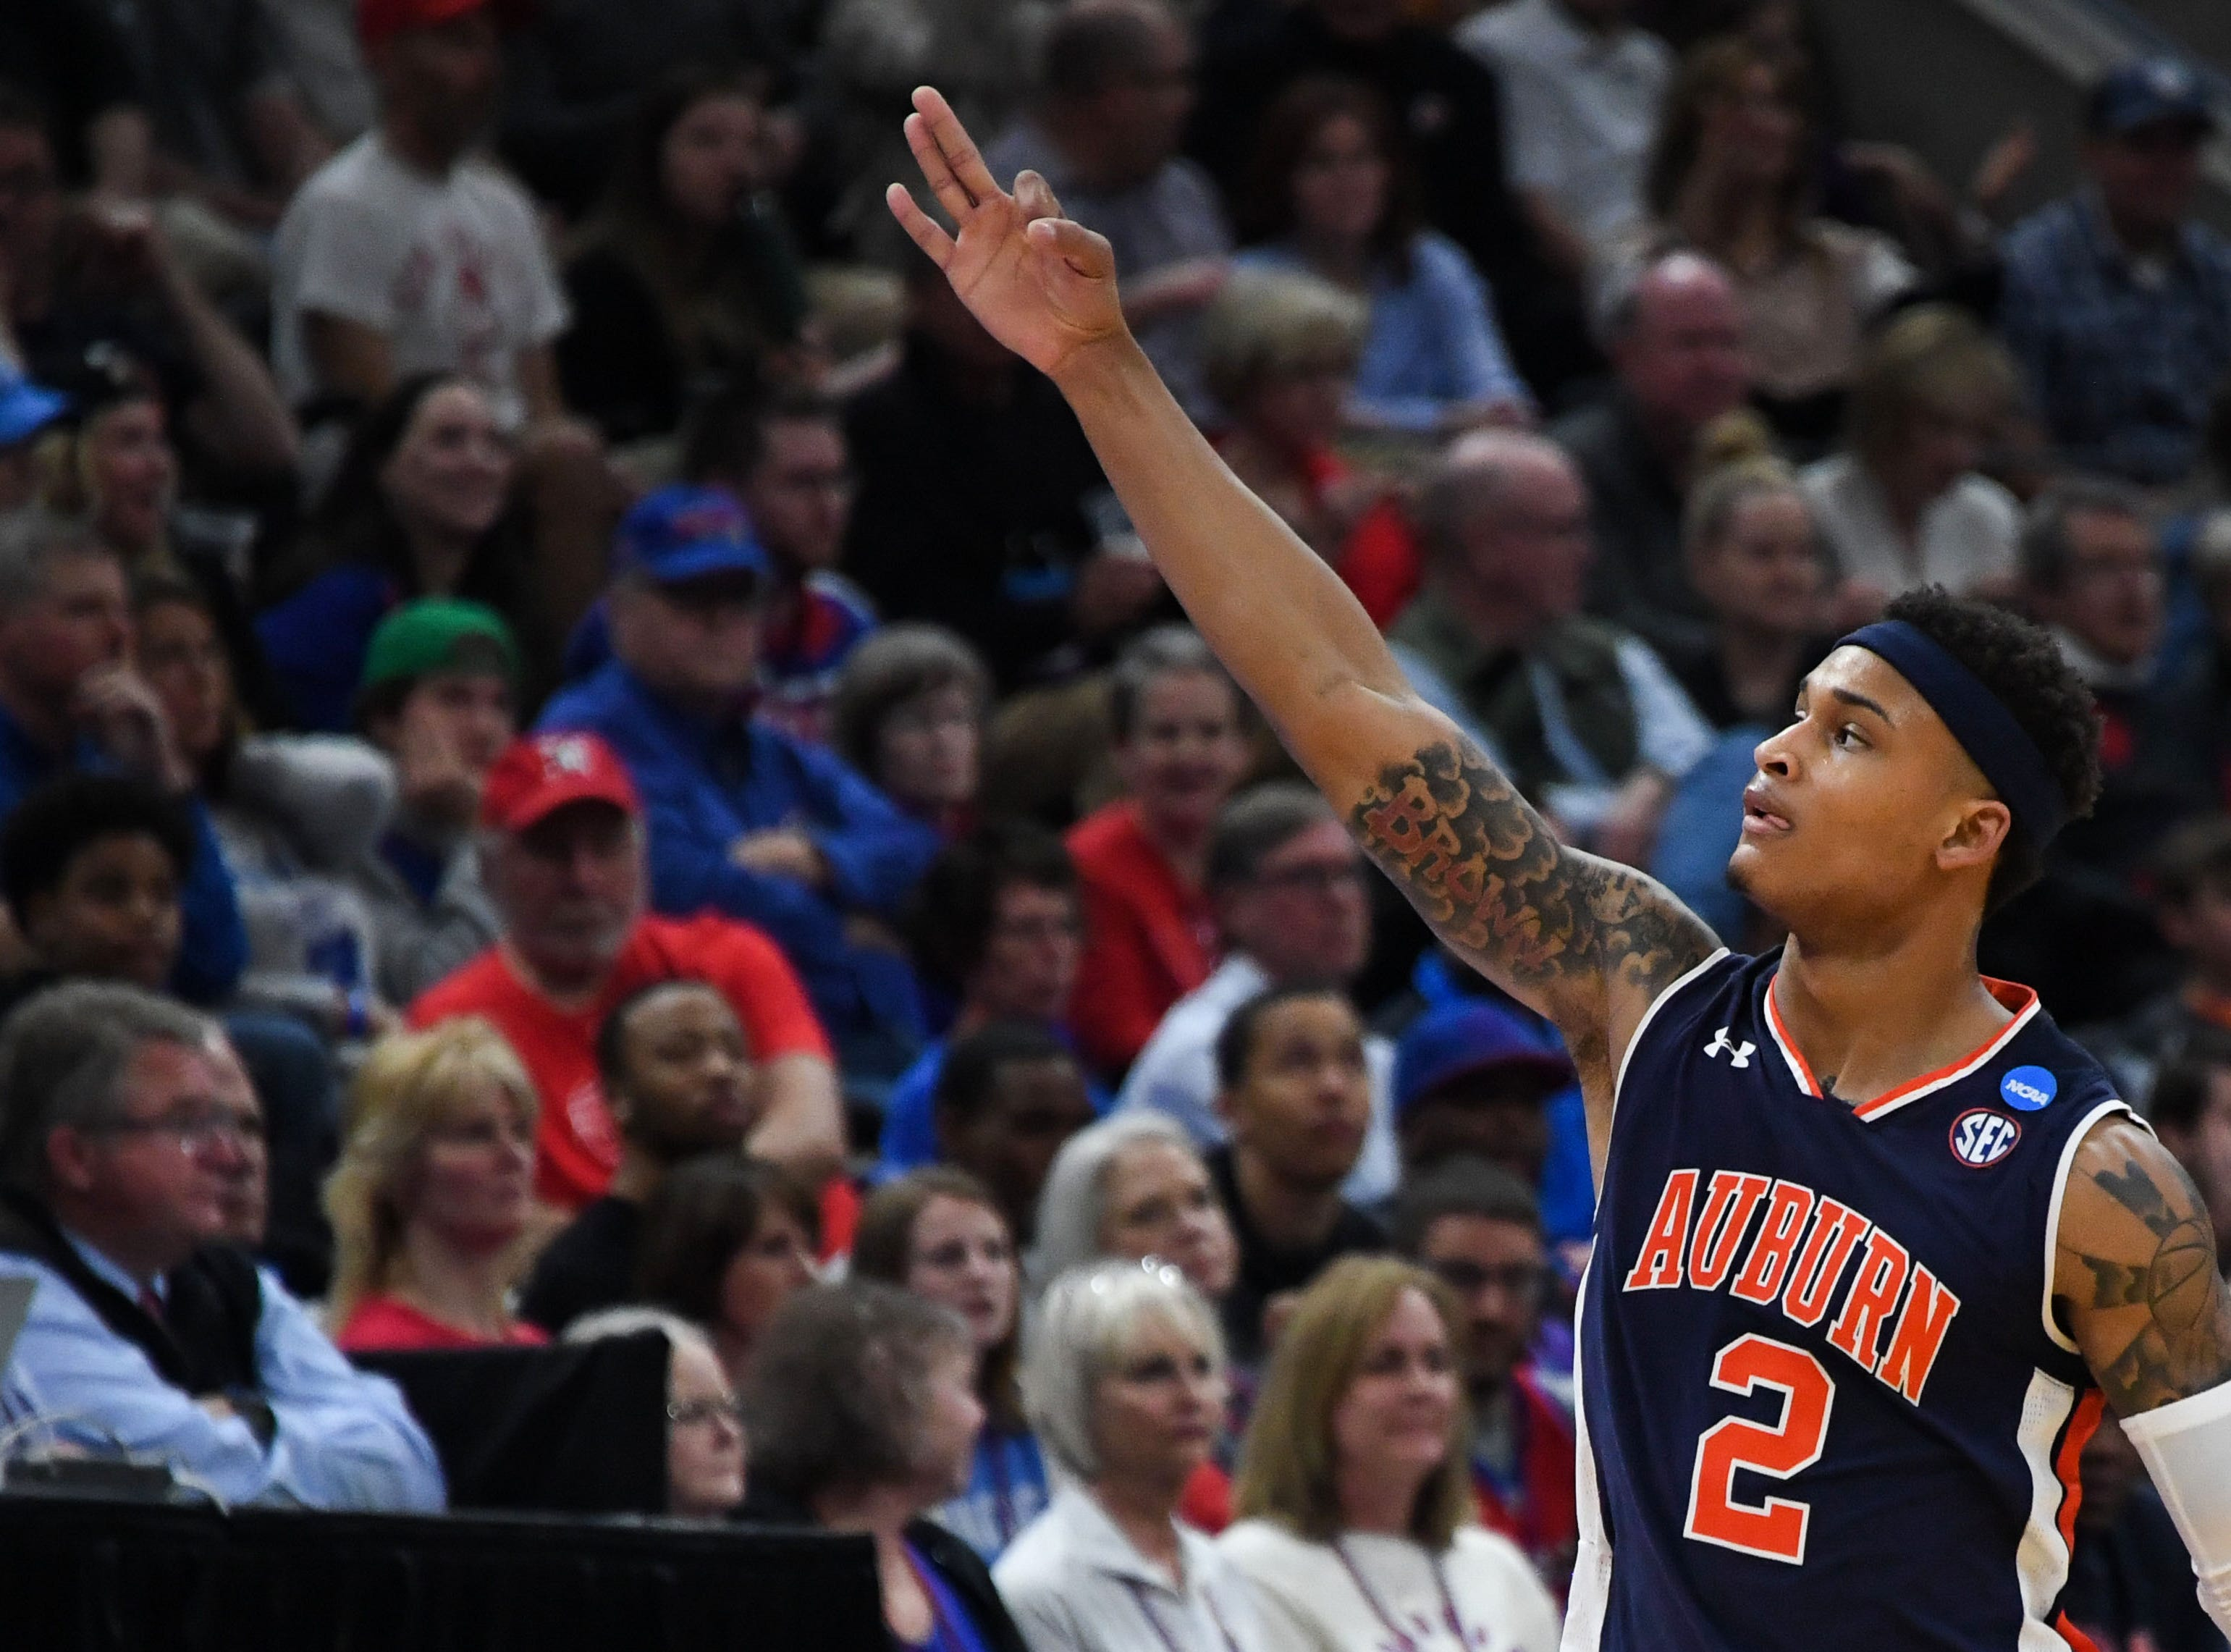 Mar 23, 2019; Salt Lake City, UT, USA; Auburn Tigers guard Bryce Brown (2) reacts during the first half in the second round of the 2019 NCAA Tournament against the Kansas Jayhawks at Vivint Smart Home Arena. Mandatory Credit: Kirby Lee-USA TODAY Sports